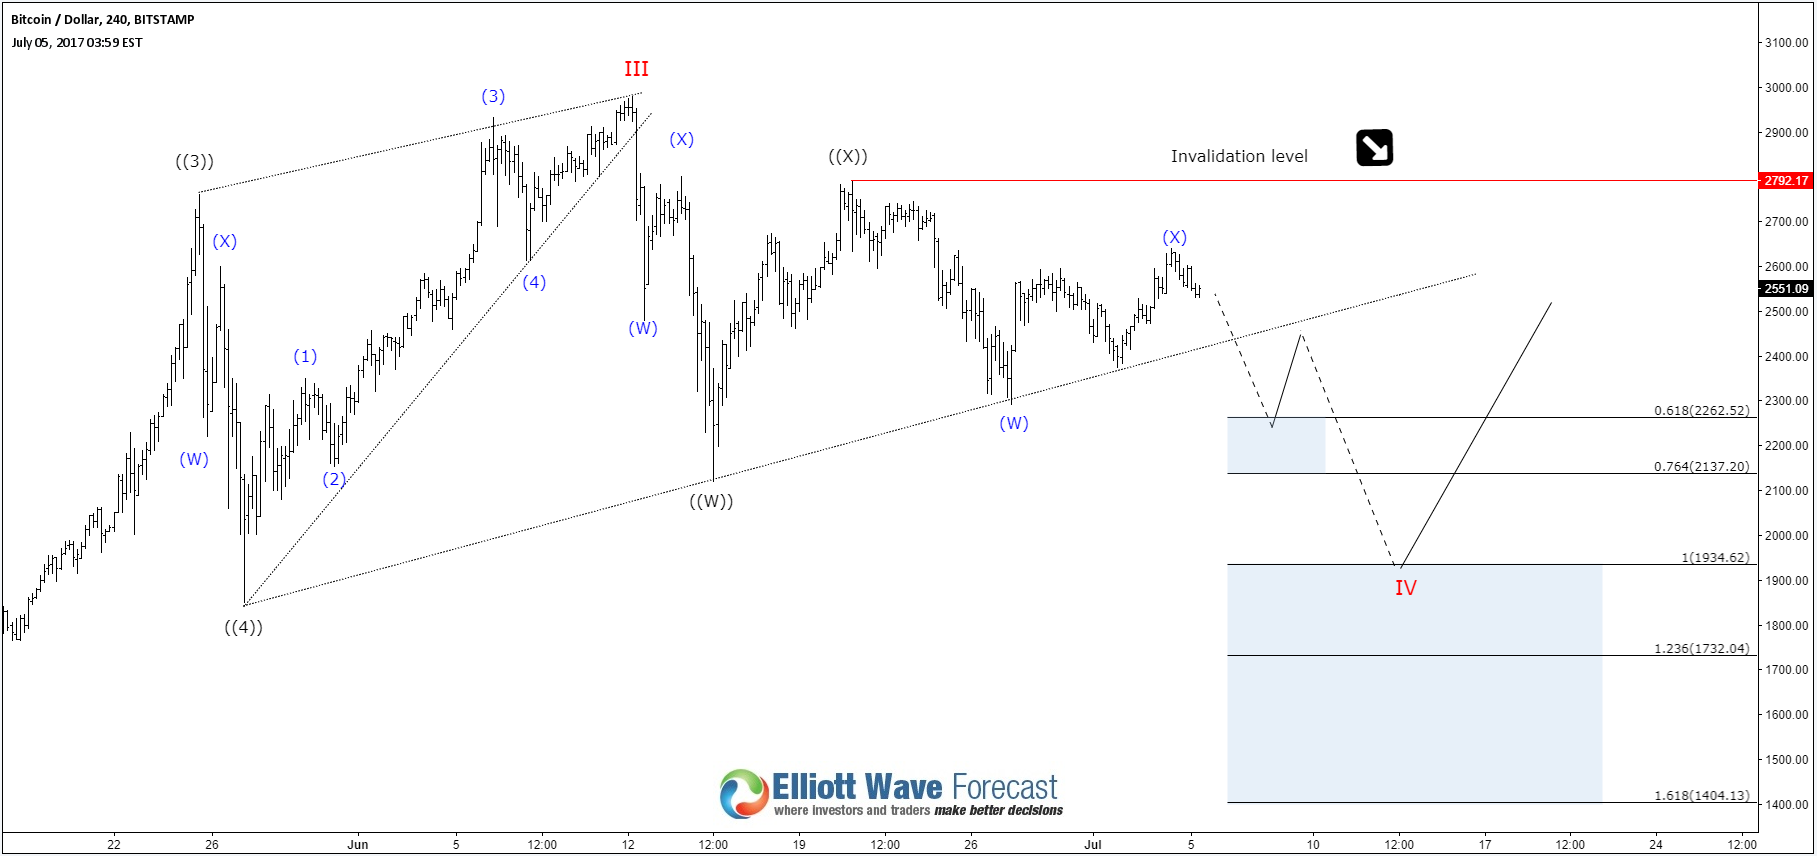 Next Elliott Wave Target for Bitcoin BTCUSD